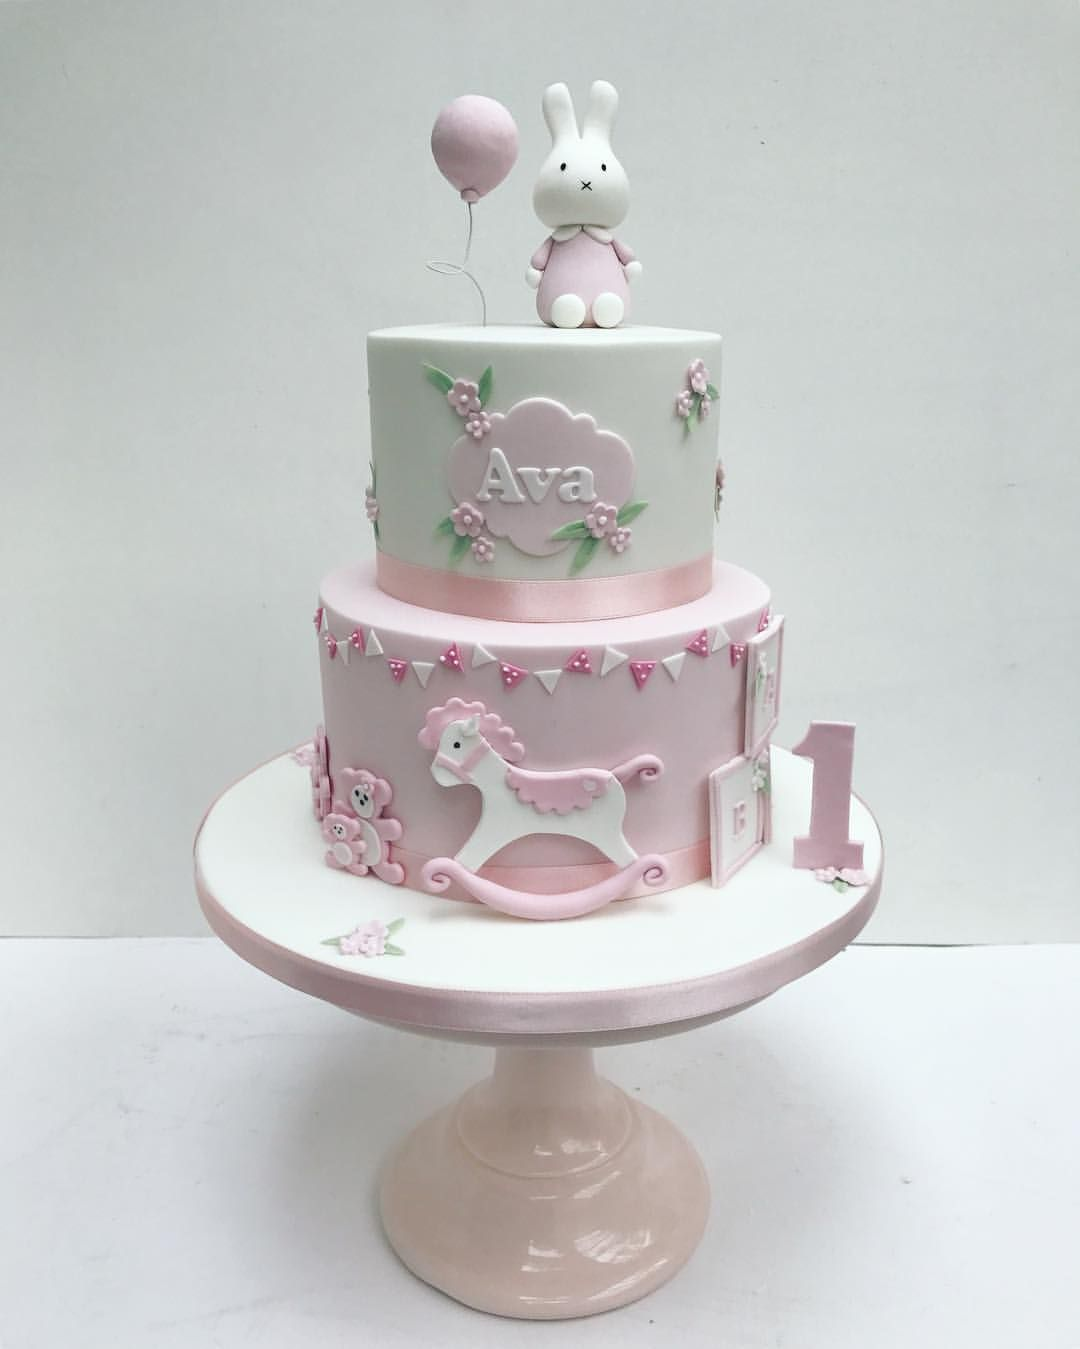 Miffy Pink bunny cake for little girls first birthday by Sweet